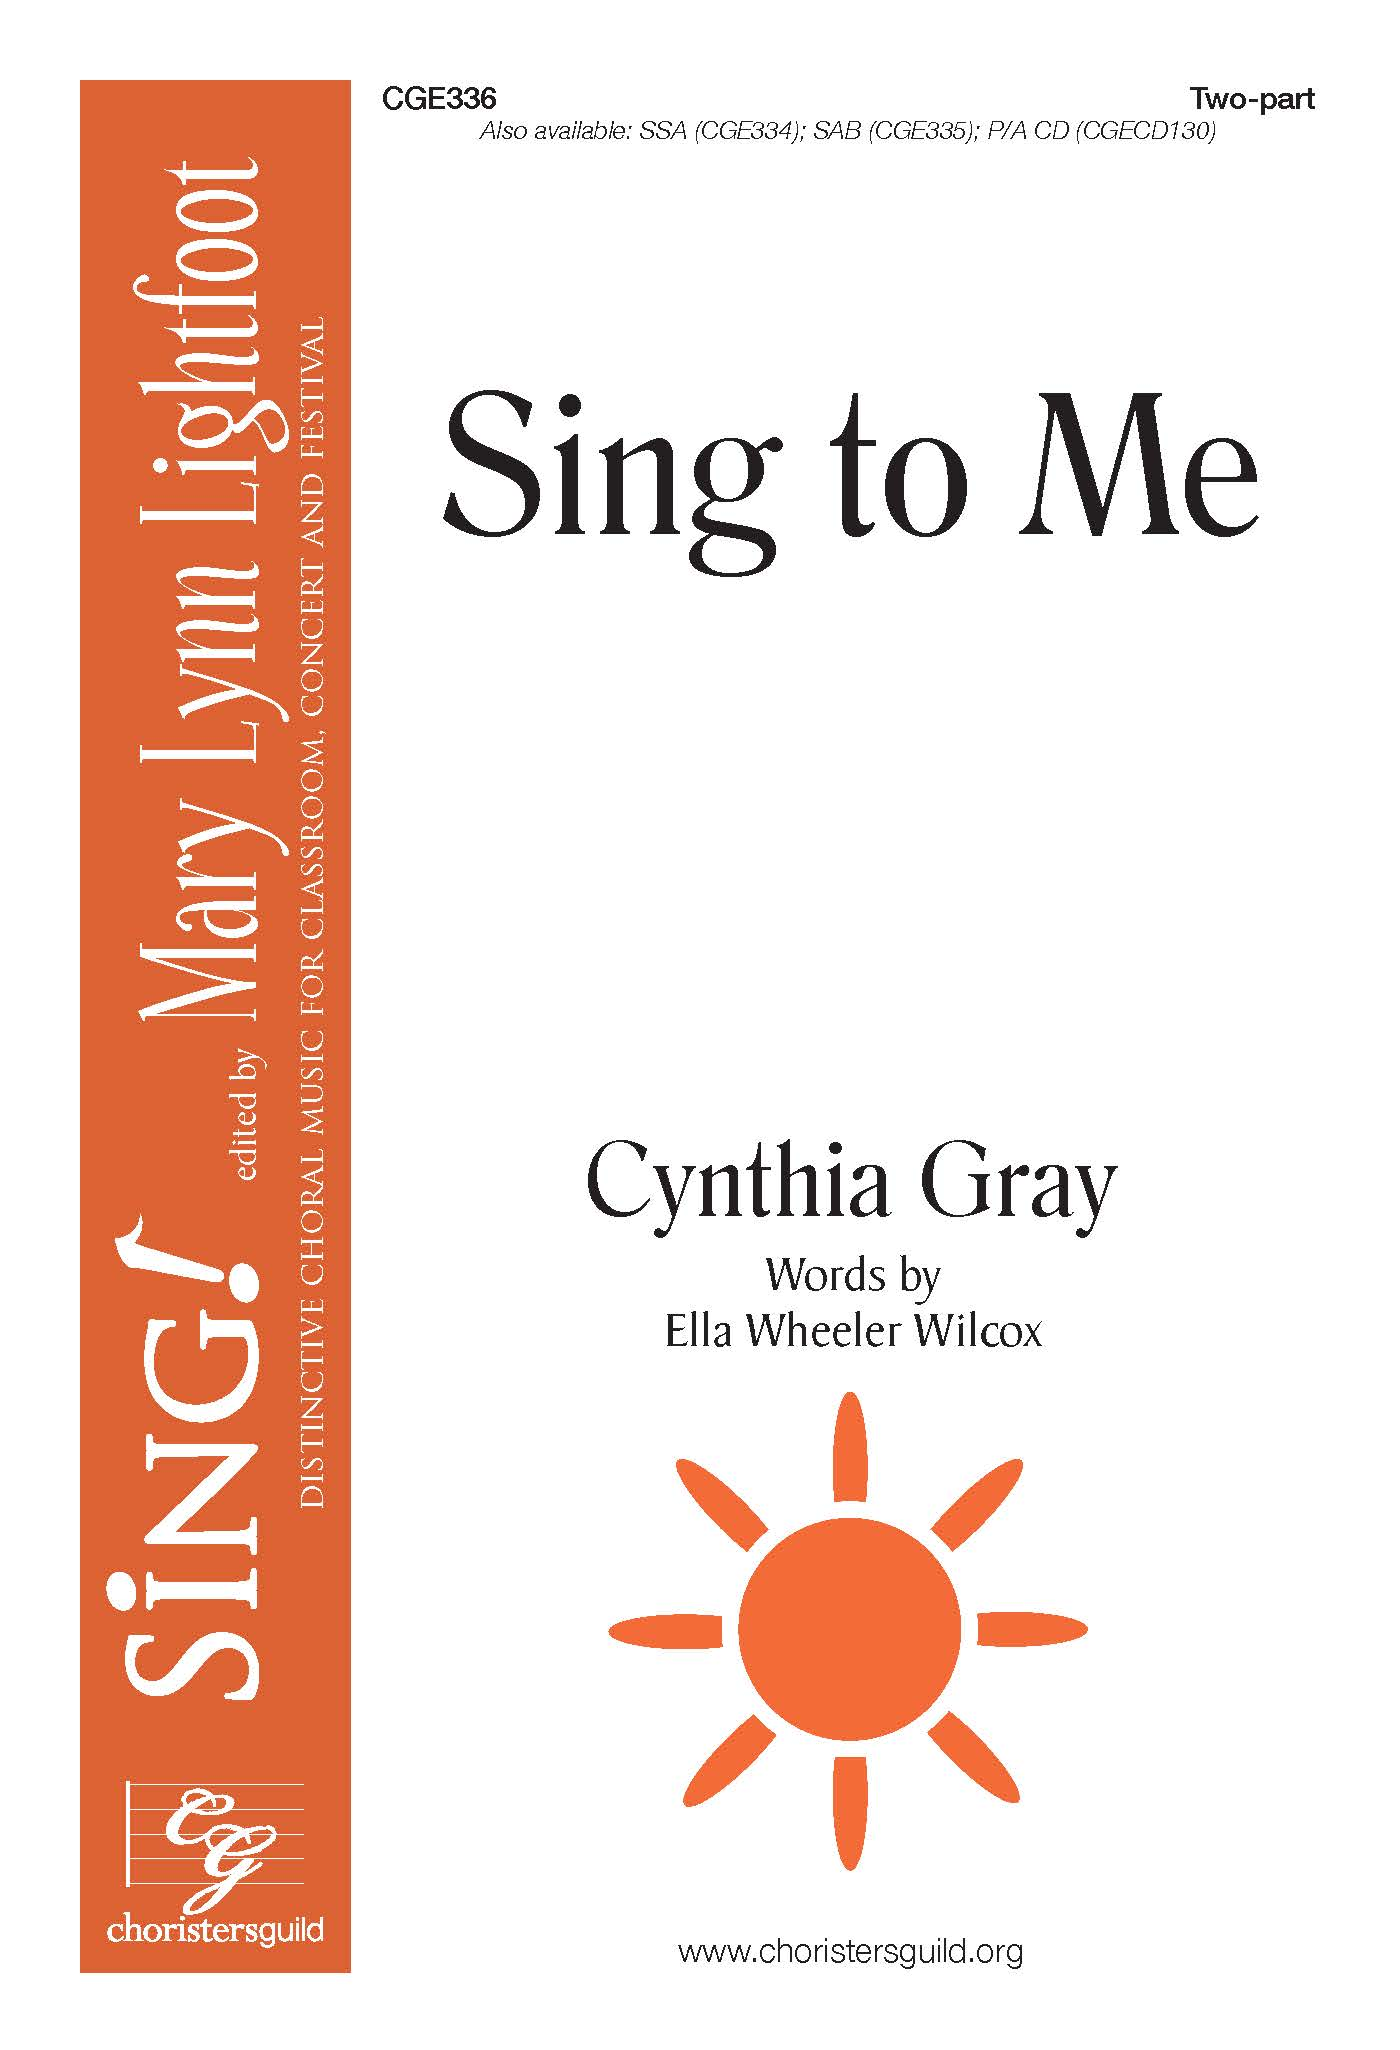 Sing to Me - Two-part